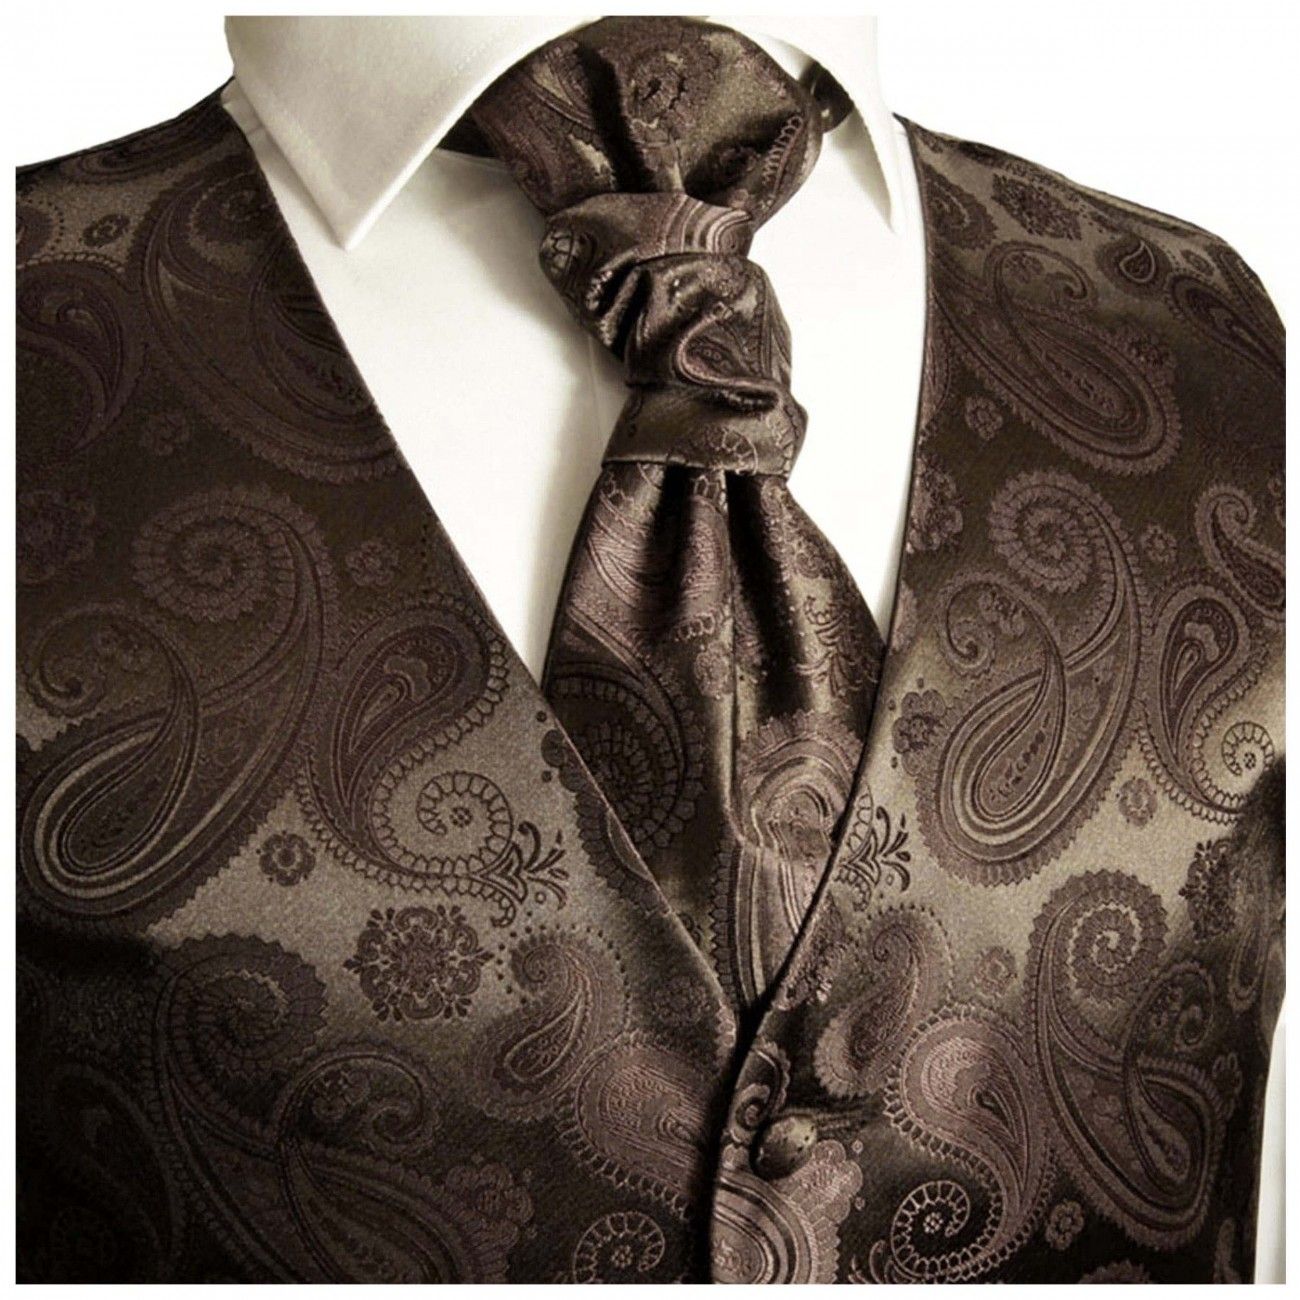 Brown waistcoat for wedding with necktie ascot tie pocket square and cufflinks v96